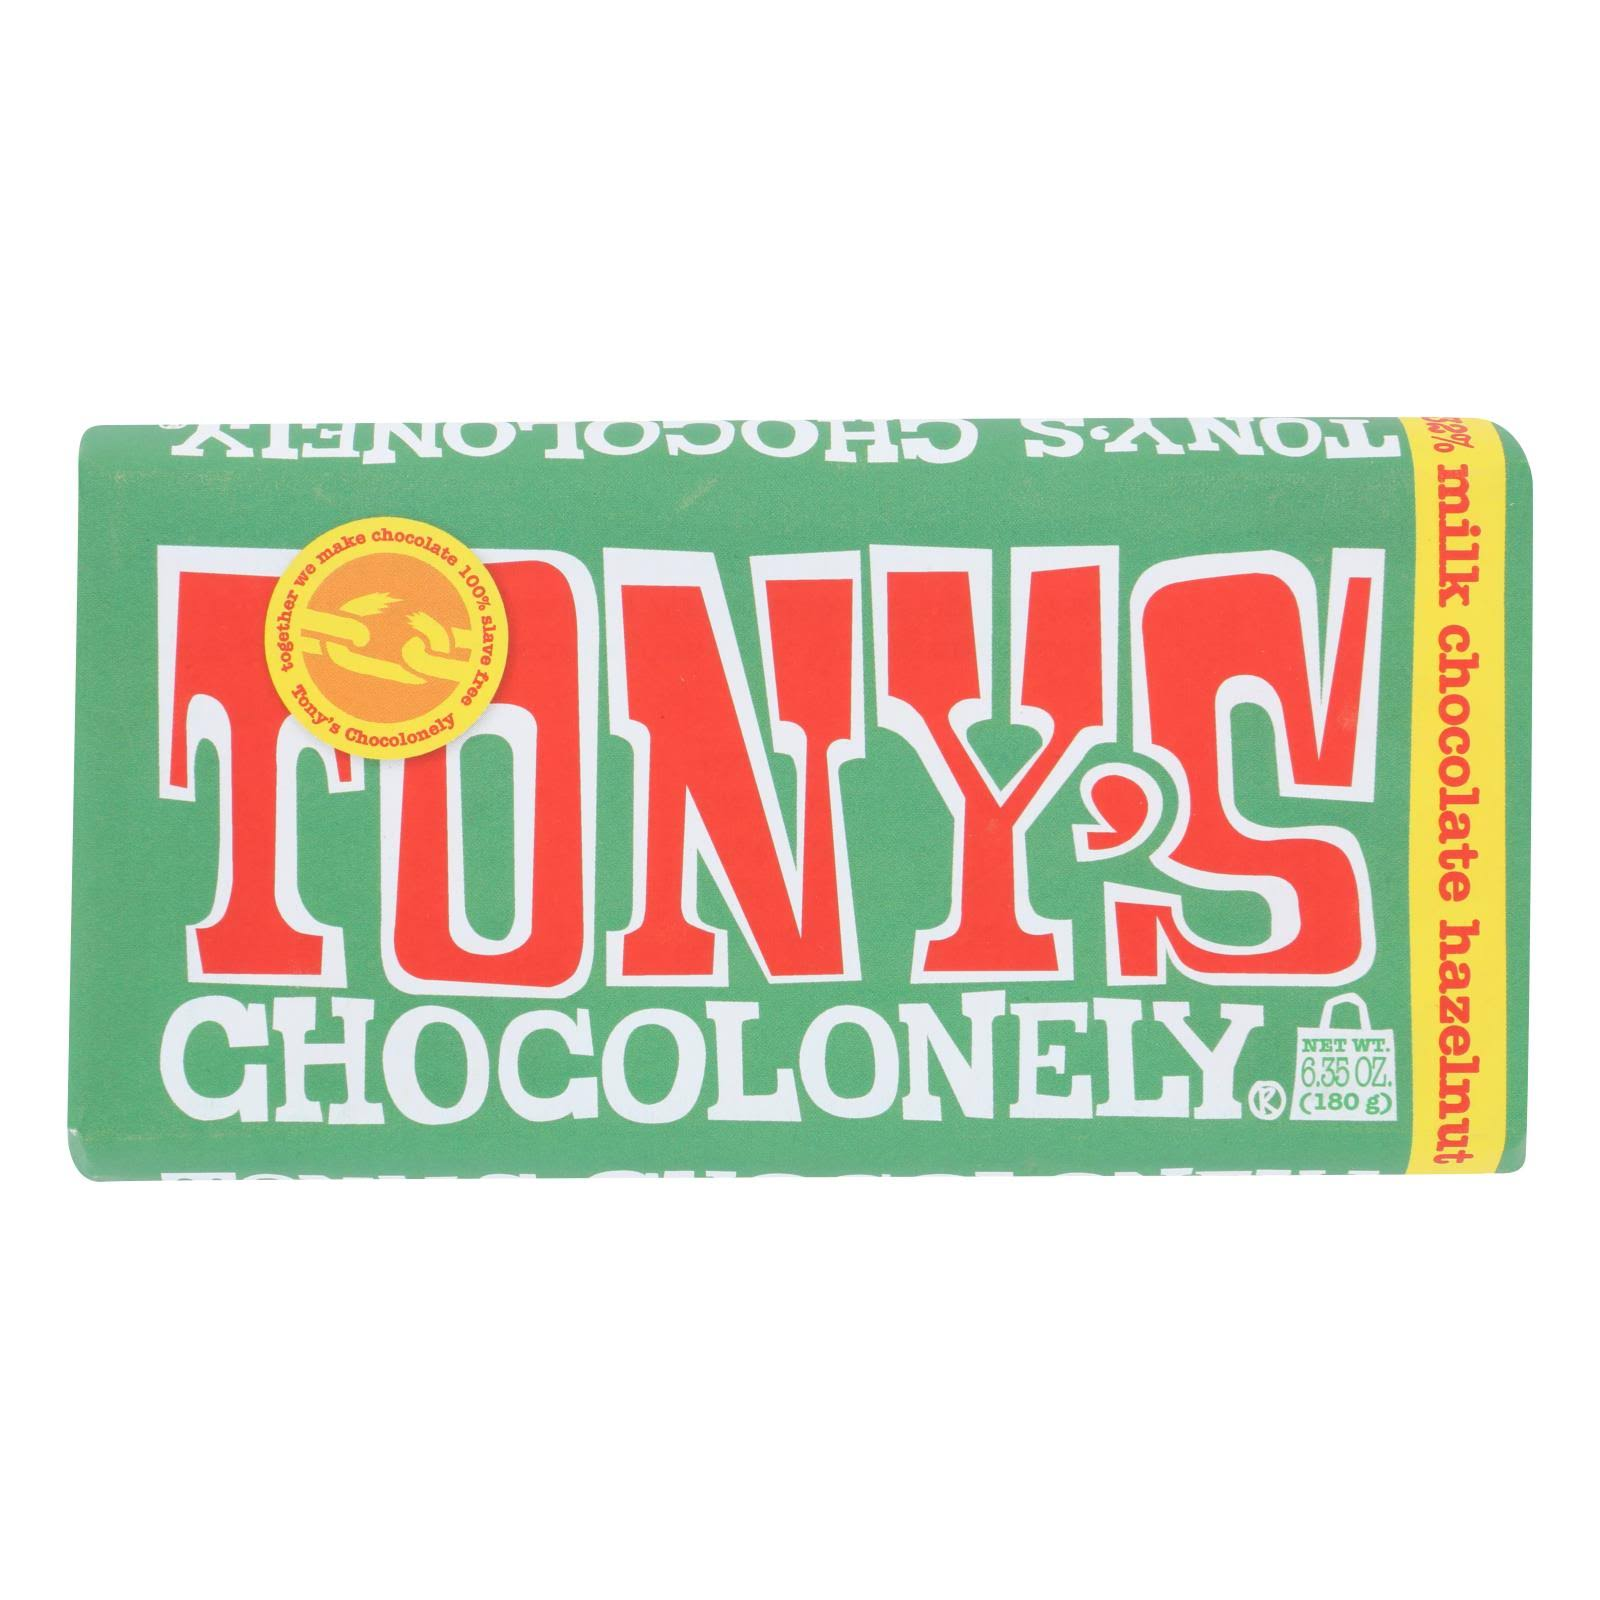 Tonys Chocolonely Milk Chocolate, Hazelnut, 32% Cocoa - 6.35 oz